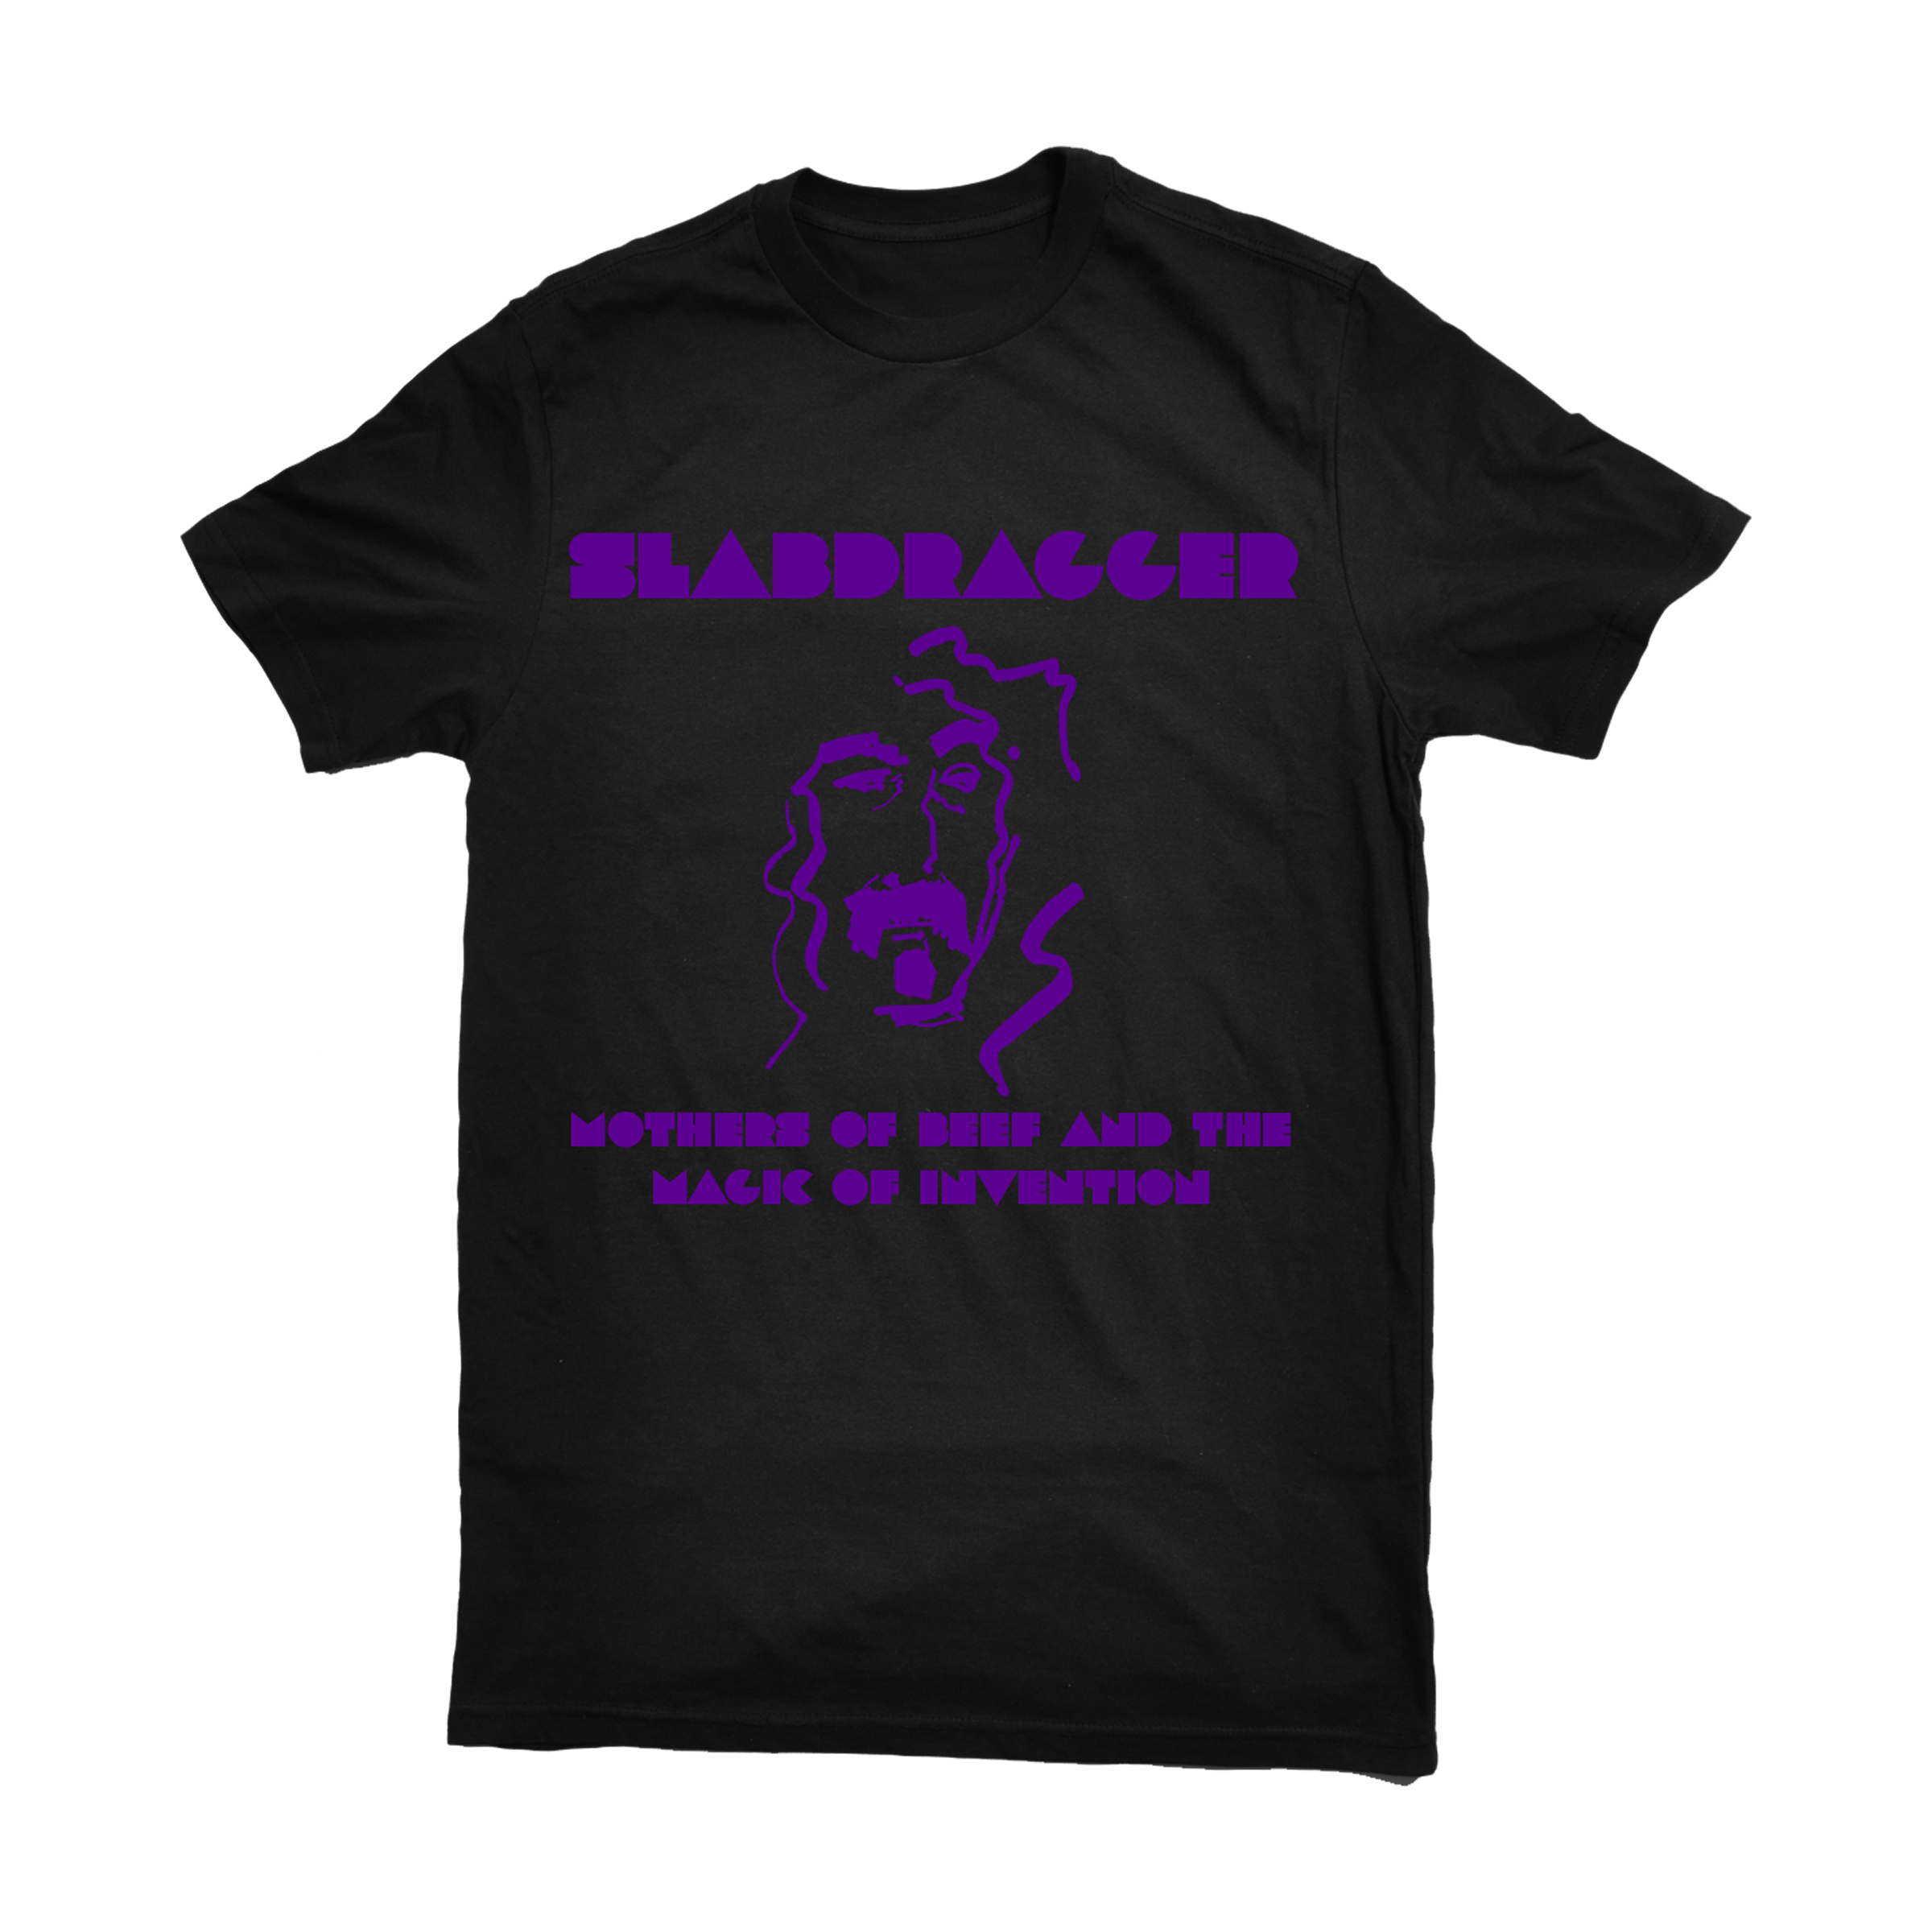 Slabdragger 'Mothers Of Beef...' split shirt